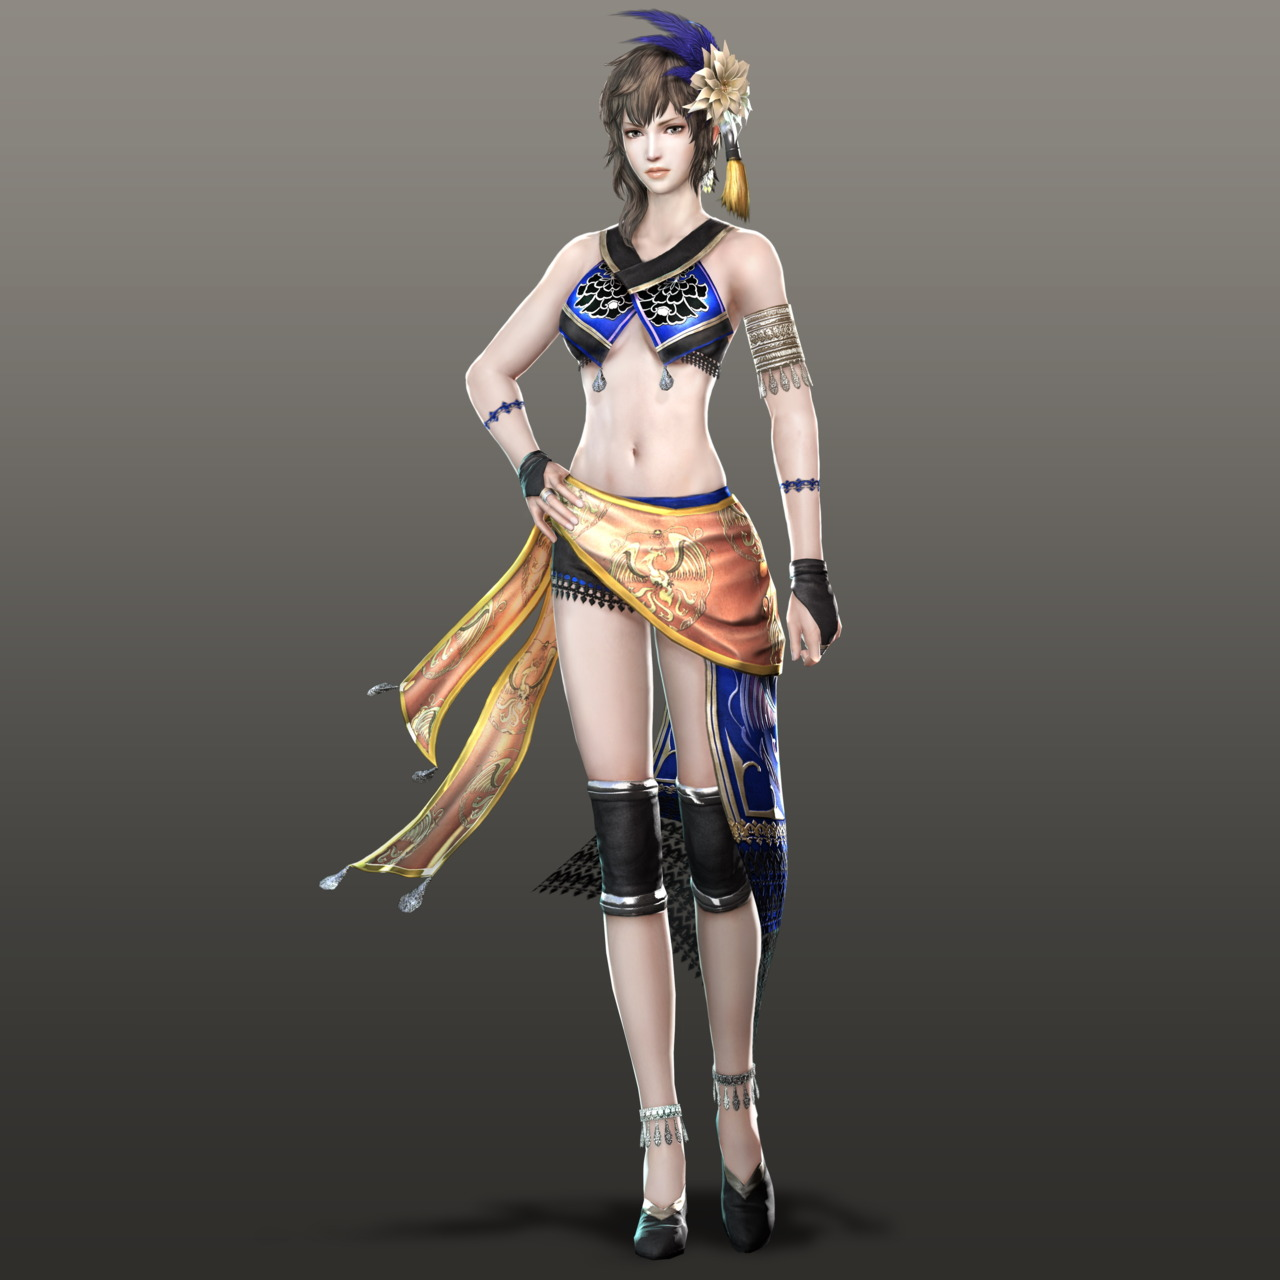 Warriors Orochi 4 Dlc Free Download: Page 9 Of 90 - Zerochan Anime Image Board